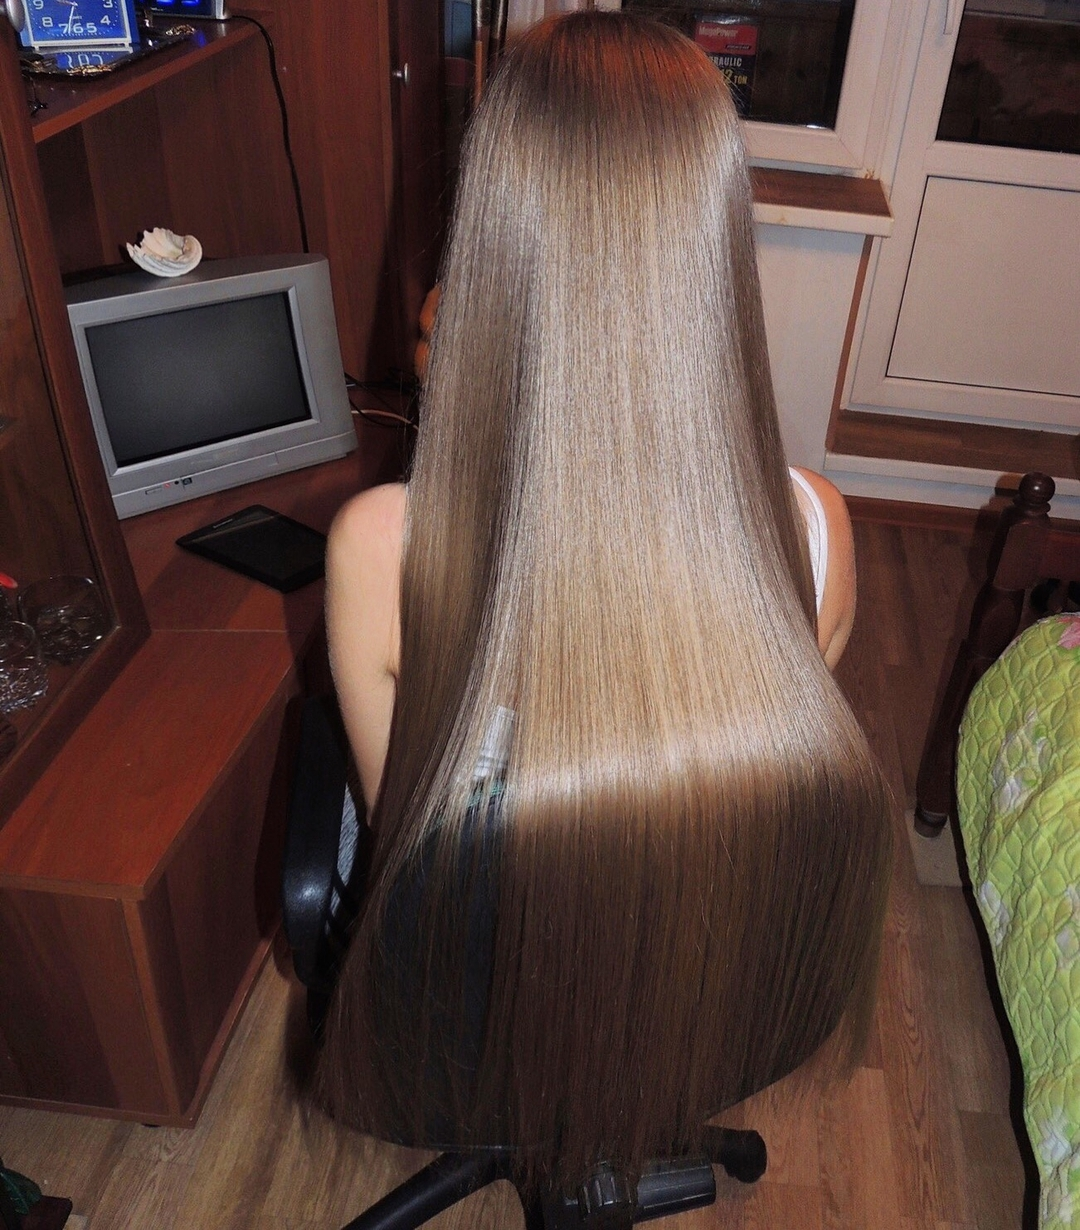 Hair Current Hairstyles And Hair Products On We Heart It